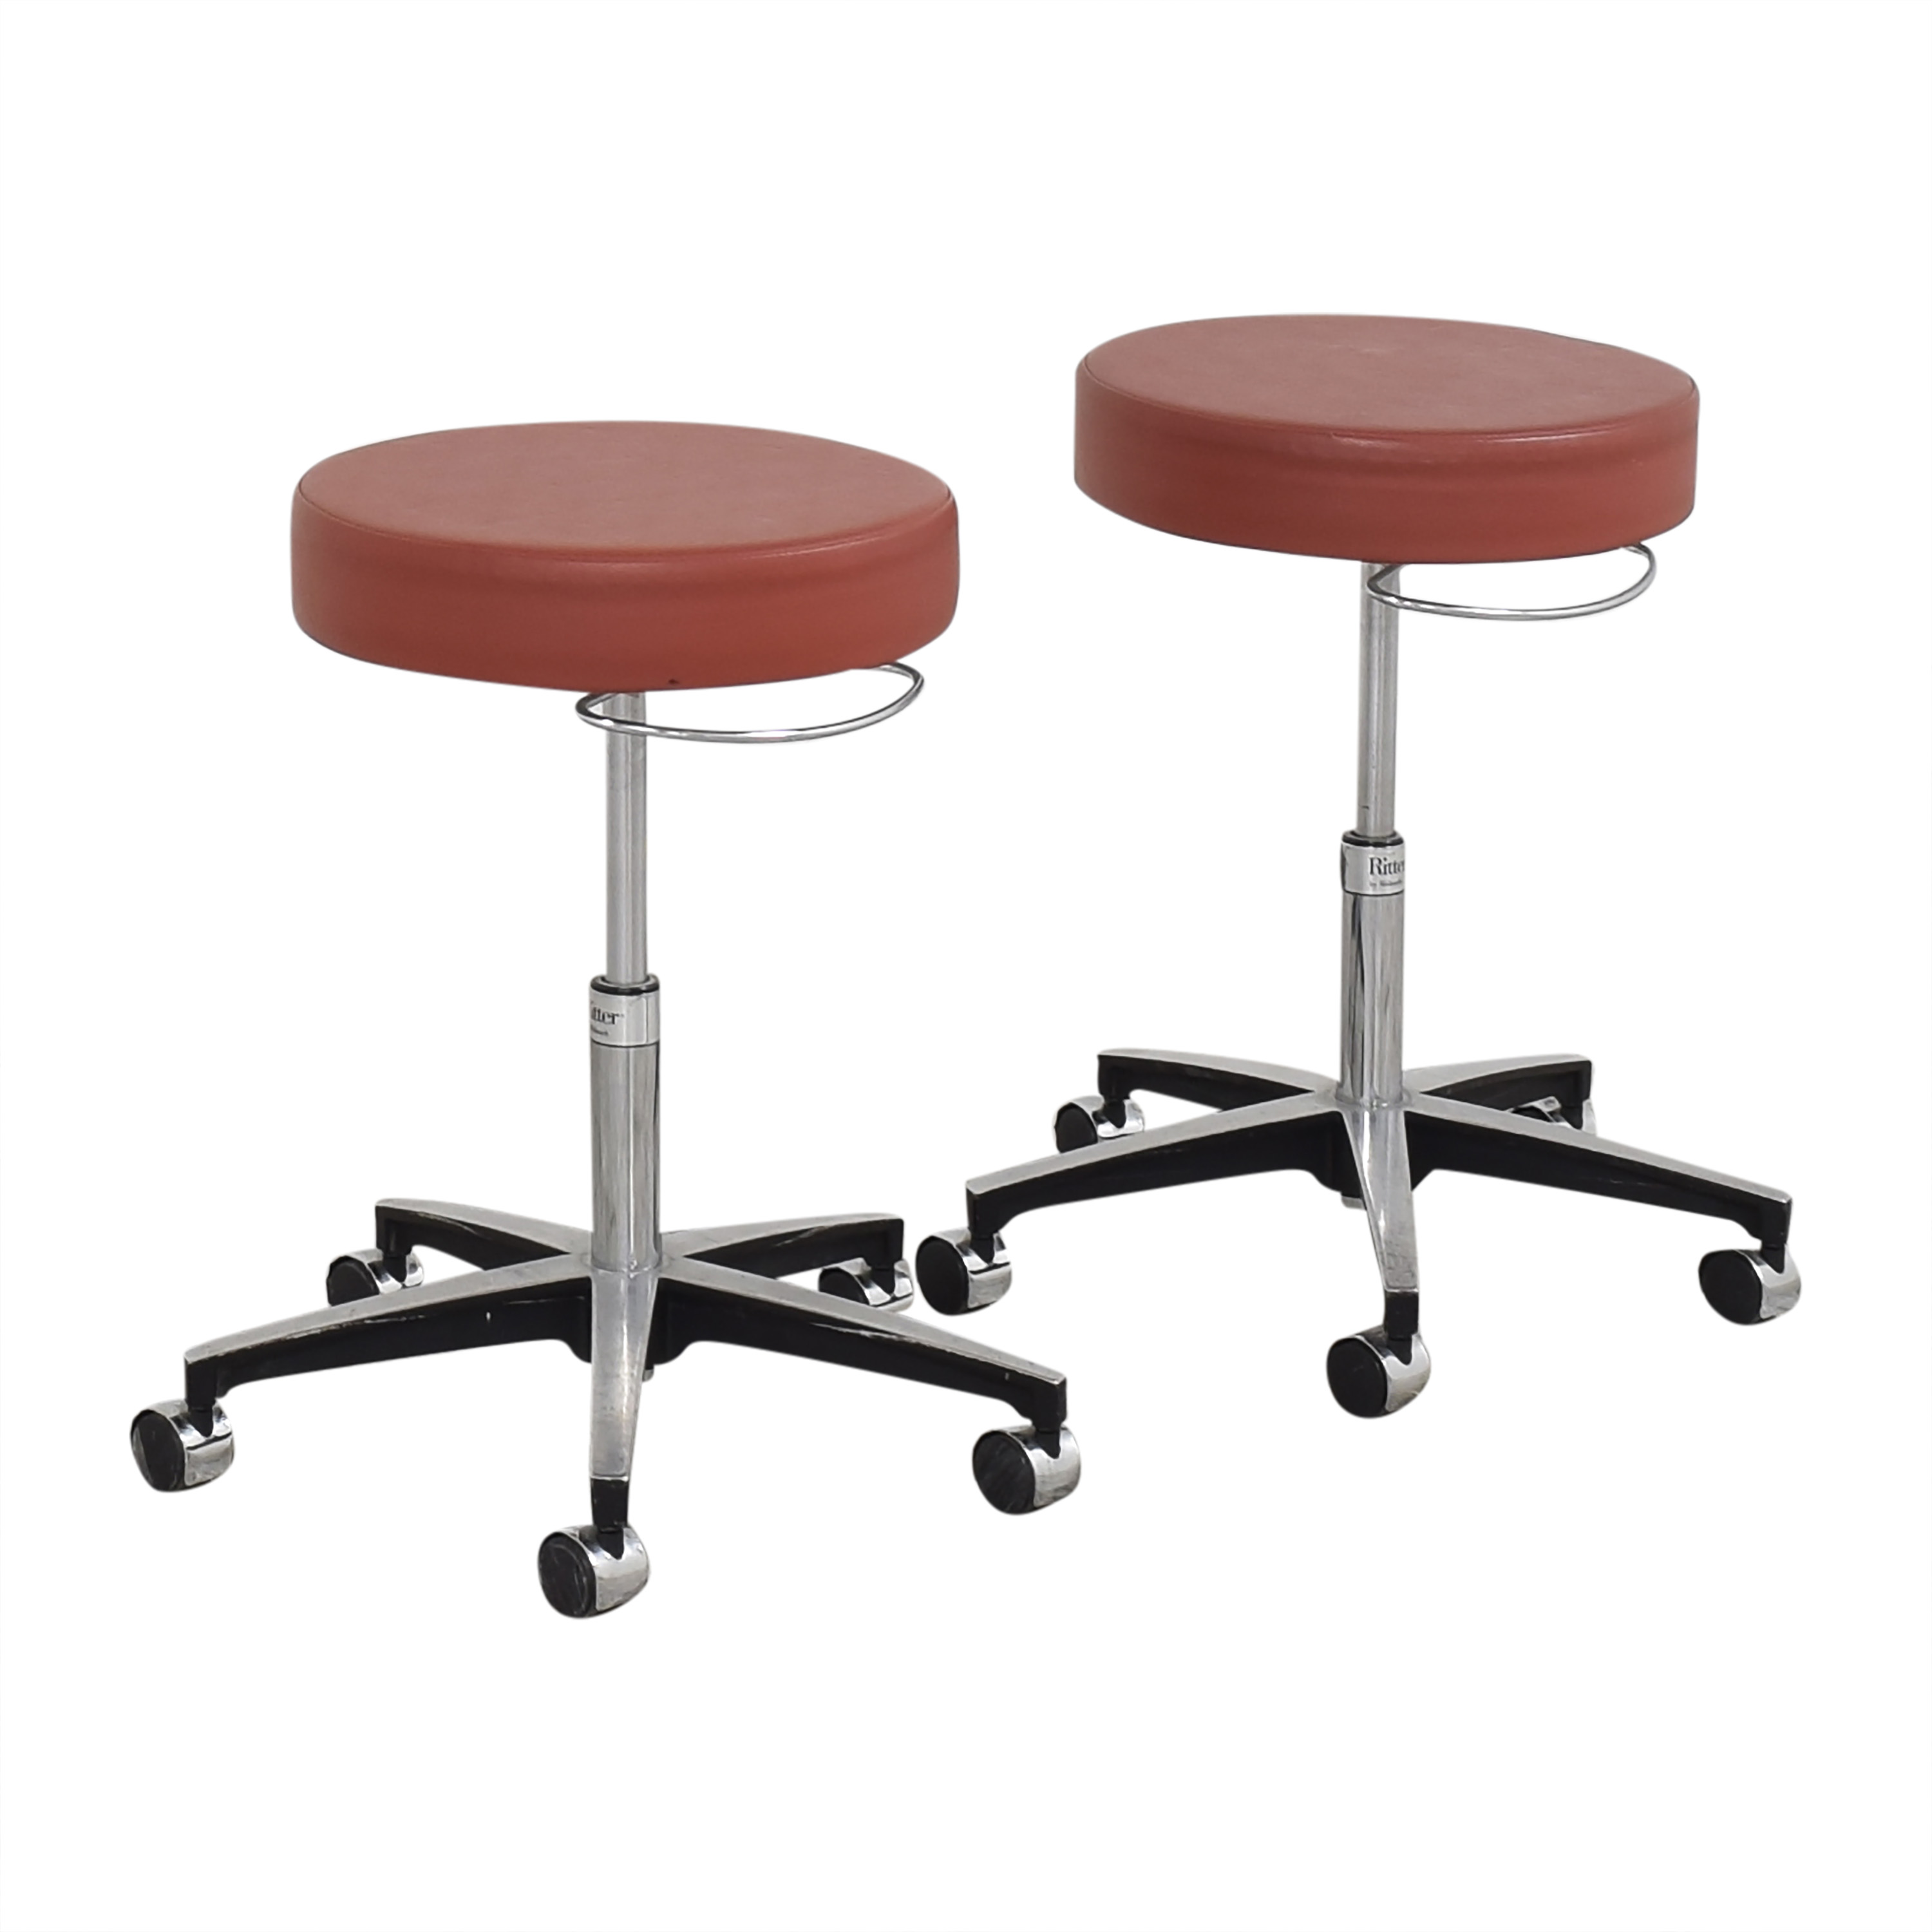 Ritter Ritter by Midmark 276 Air Lift Stools for sale